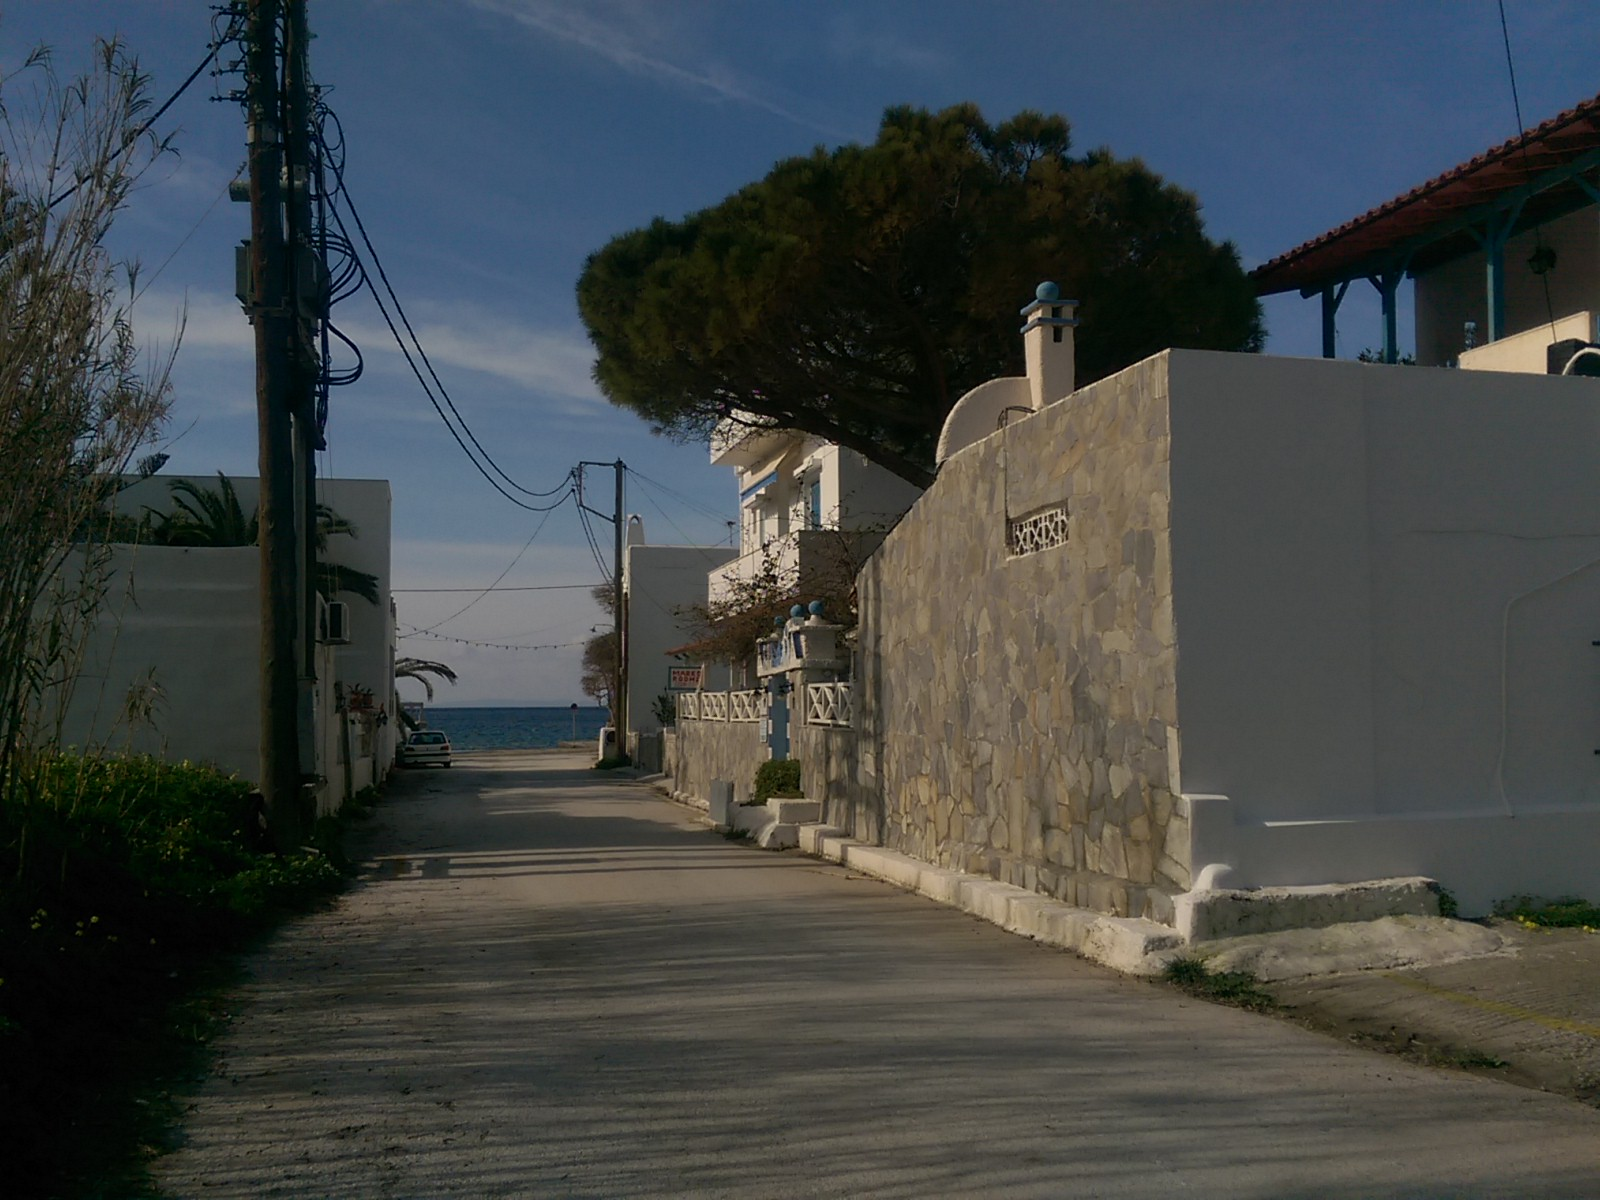 A concrete road leads to the sea with houses and trees on each side